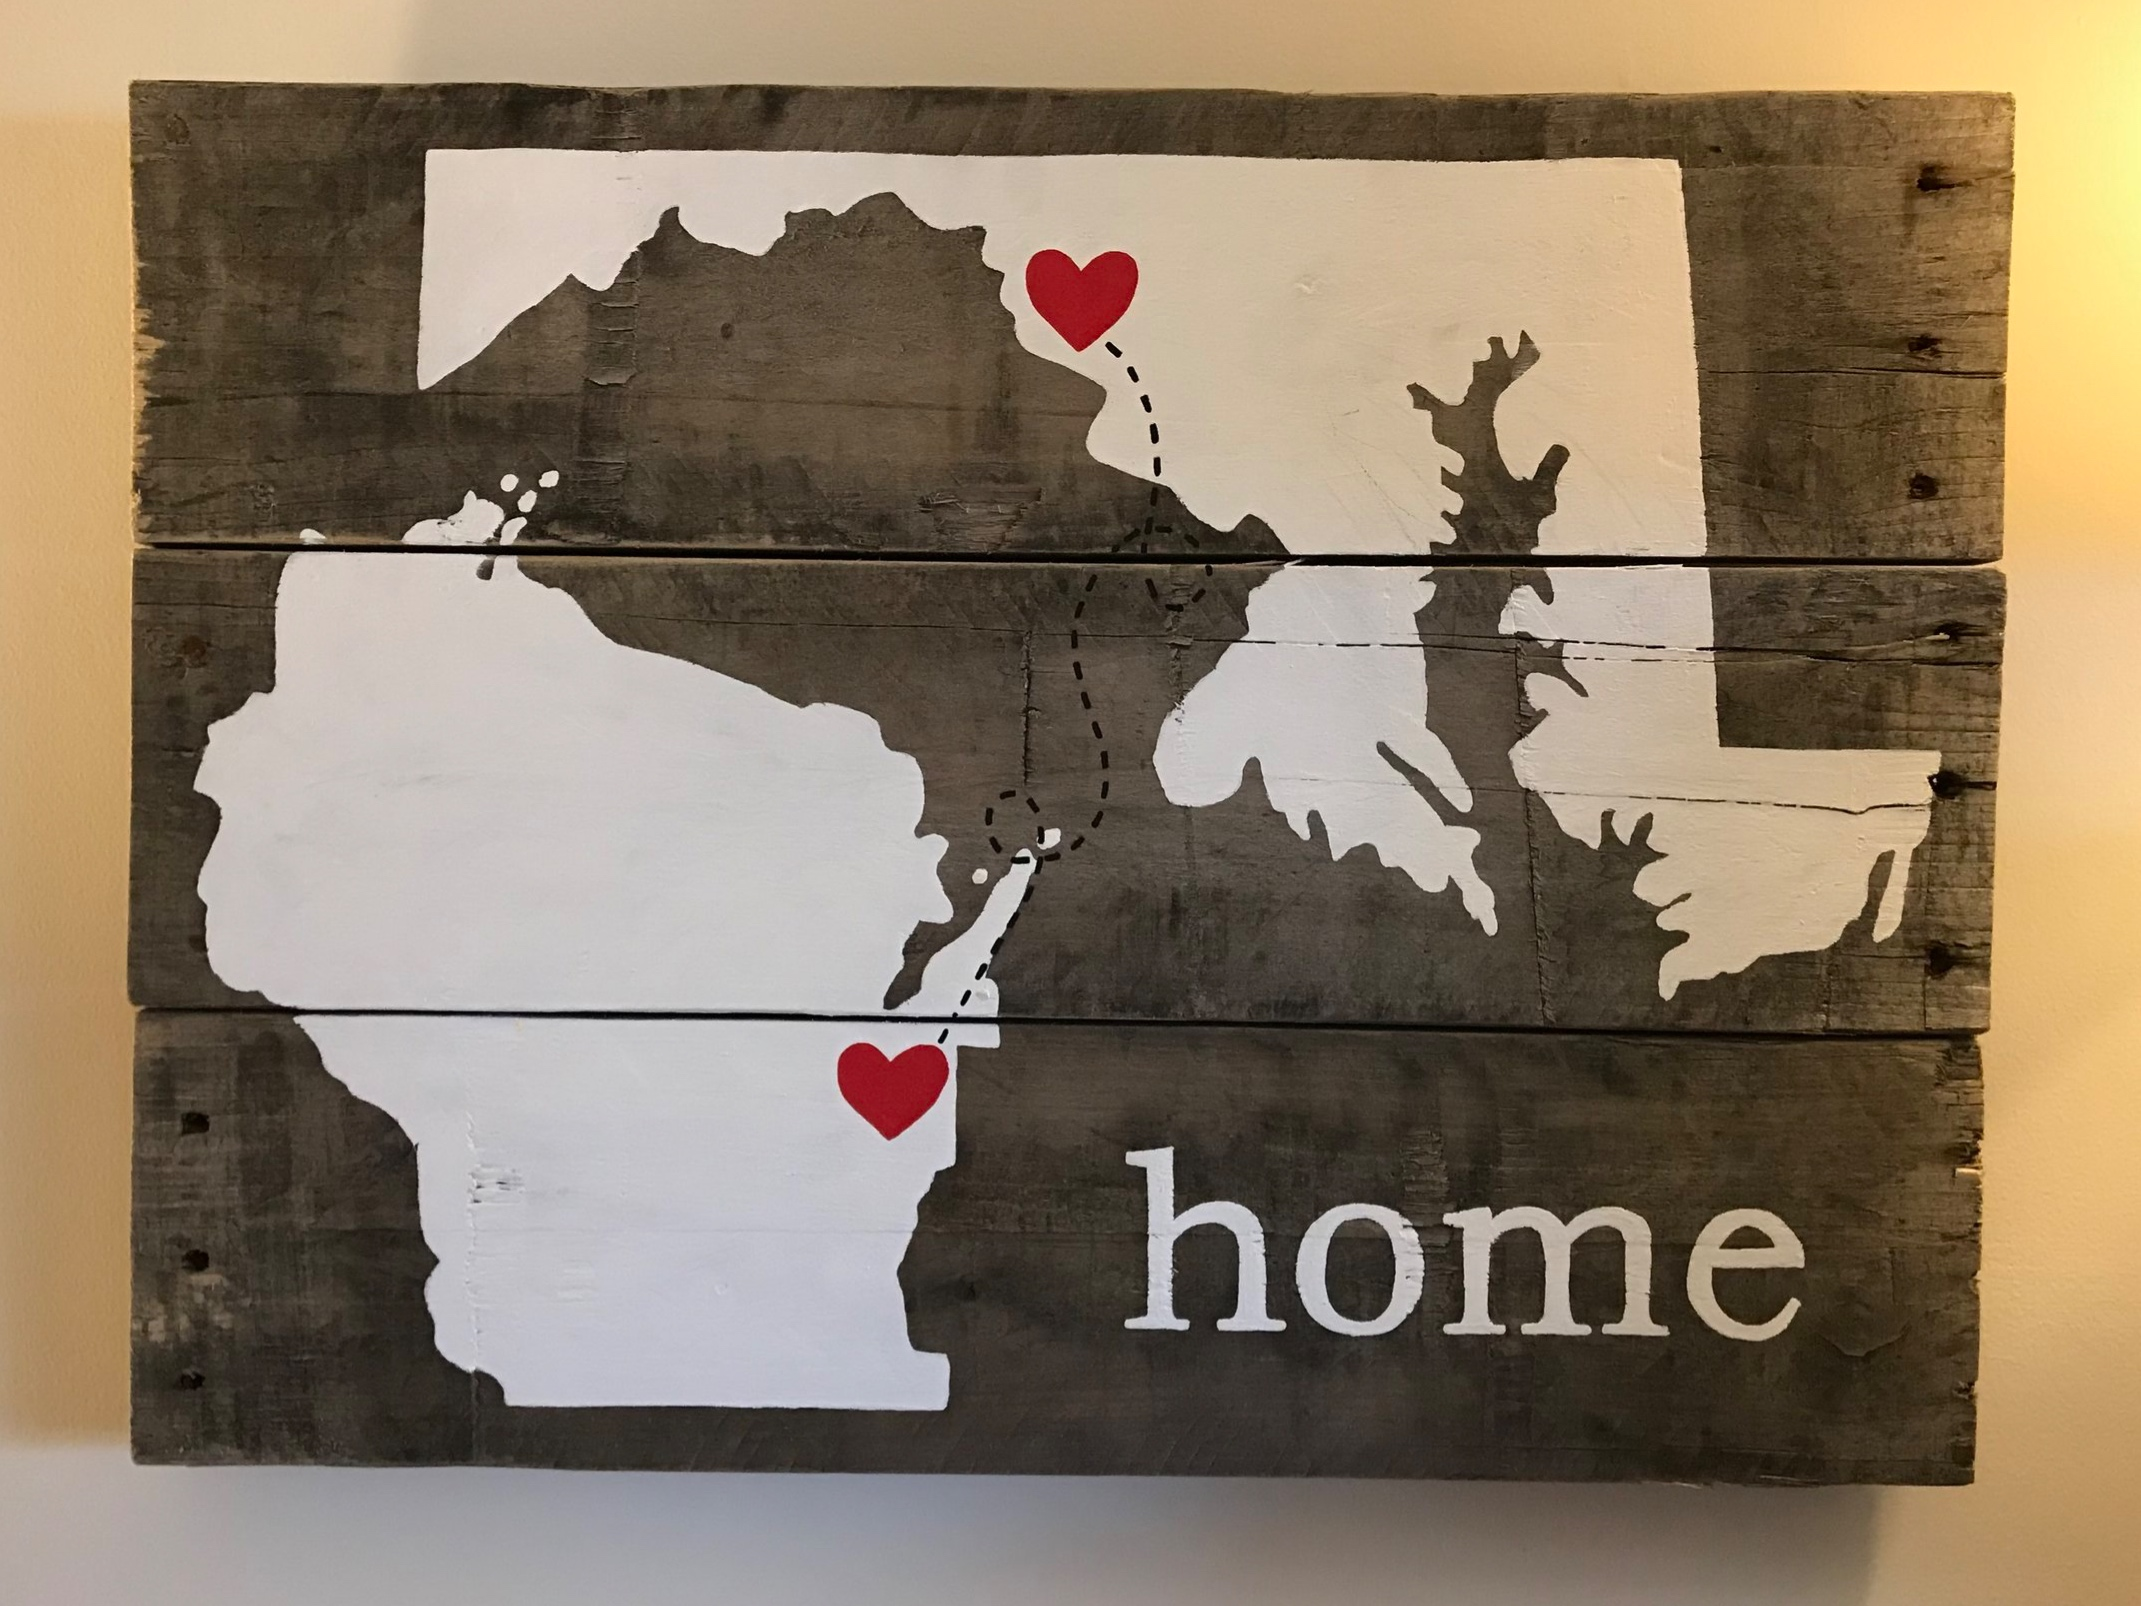 From our old home to our new home, Wisconsin!